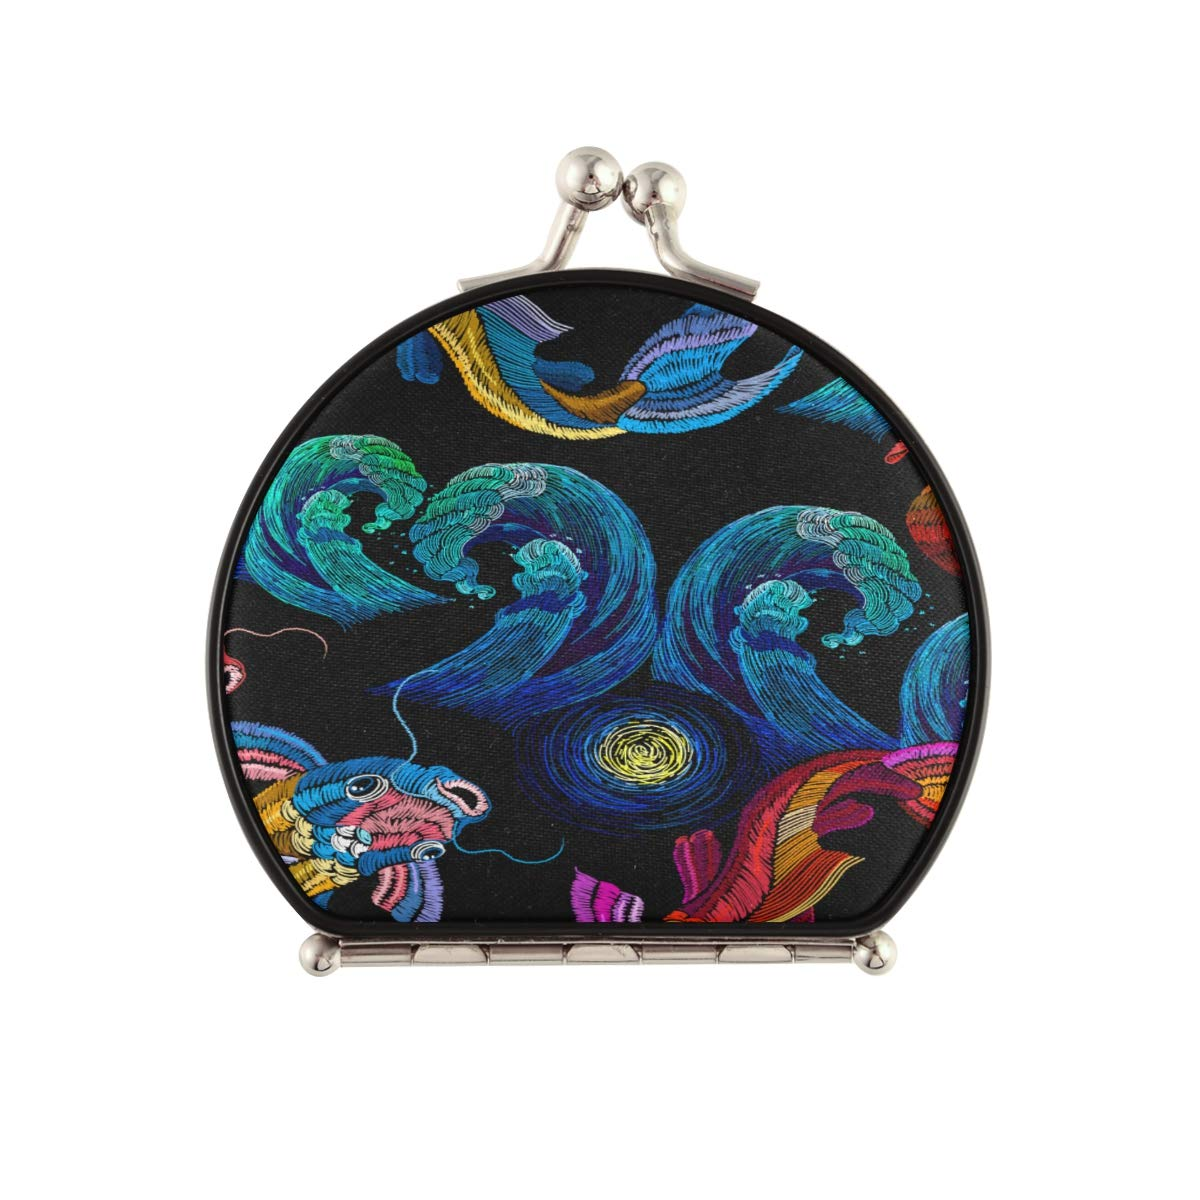 Popular brand Magnifying Compact Cosmetic OFFicial store Mirror Embroidery Koi Fish Blue Carp